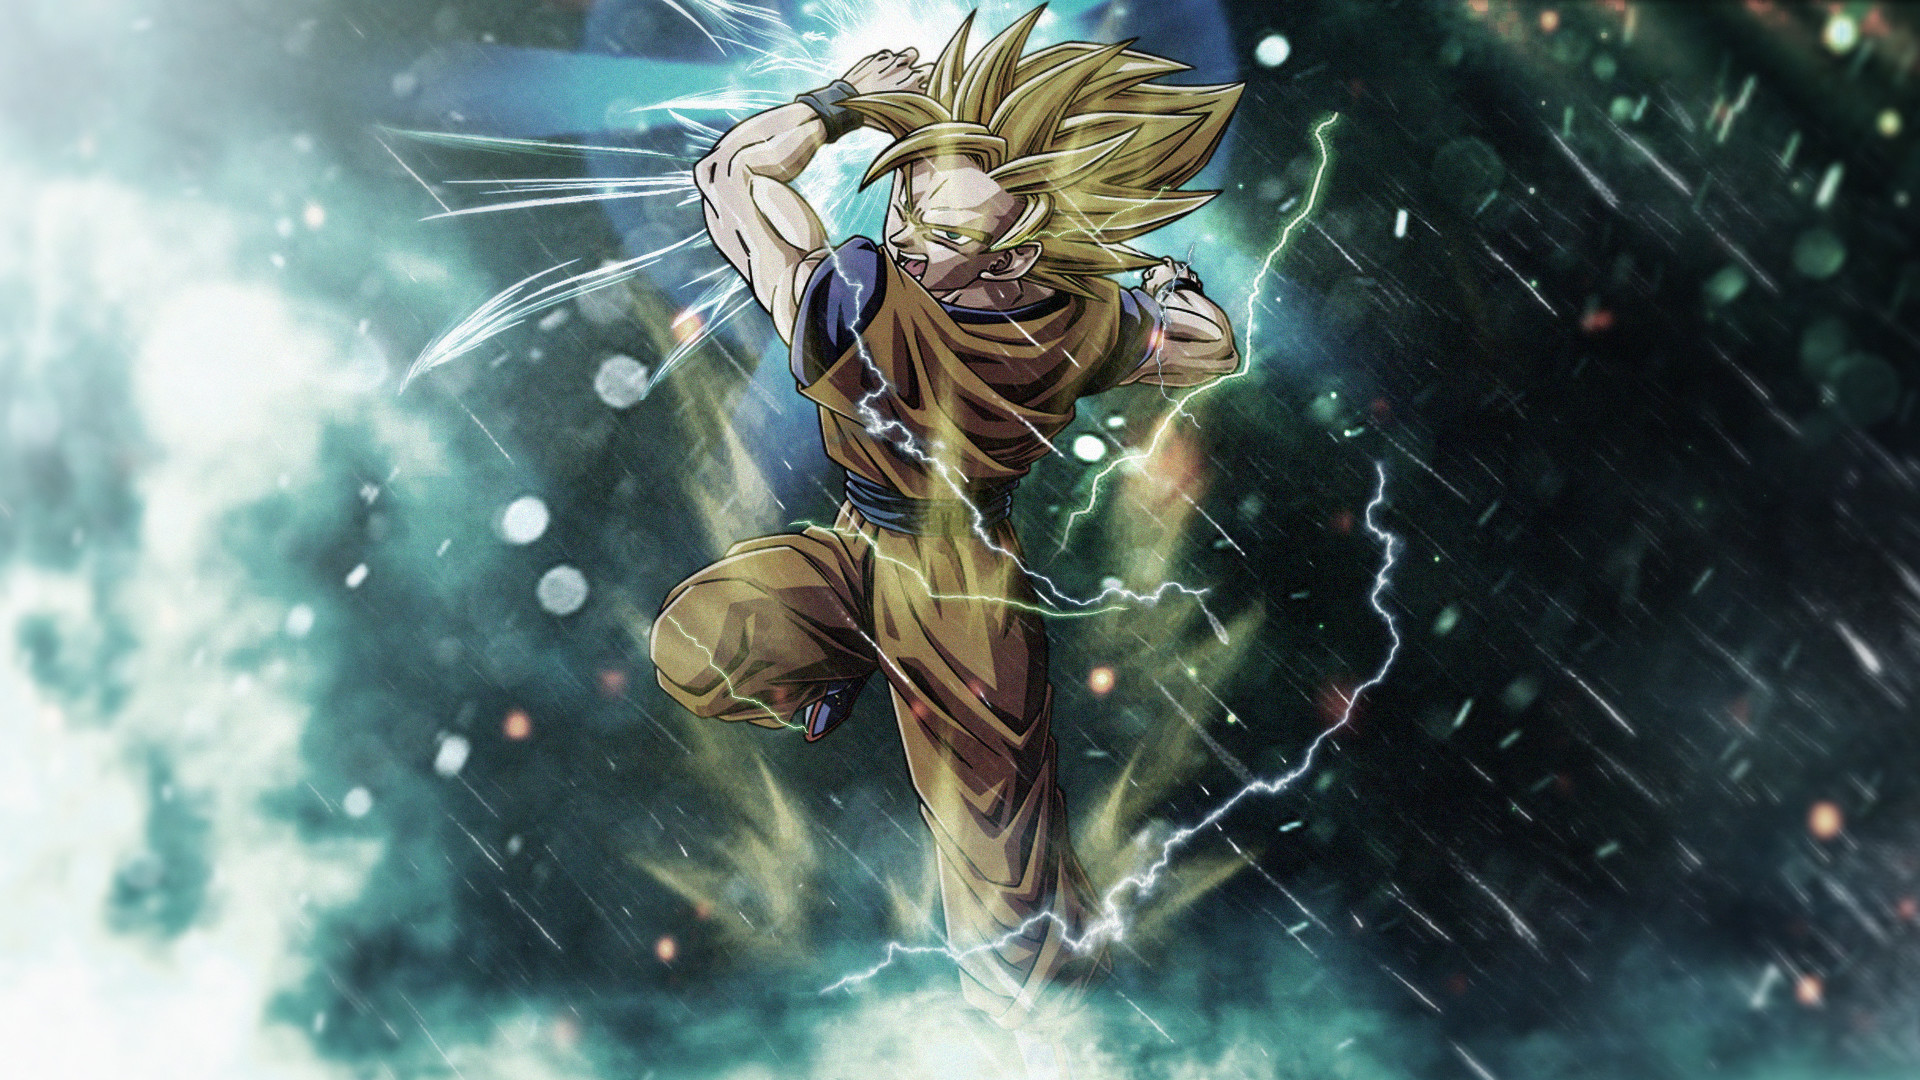 … awesome dragon ball z wallpapers wallpapersafari; dbz wallpapers hd all  saiyans wallpapersafari …